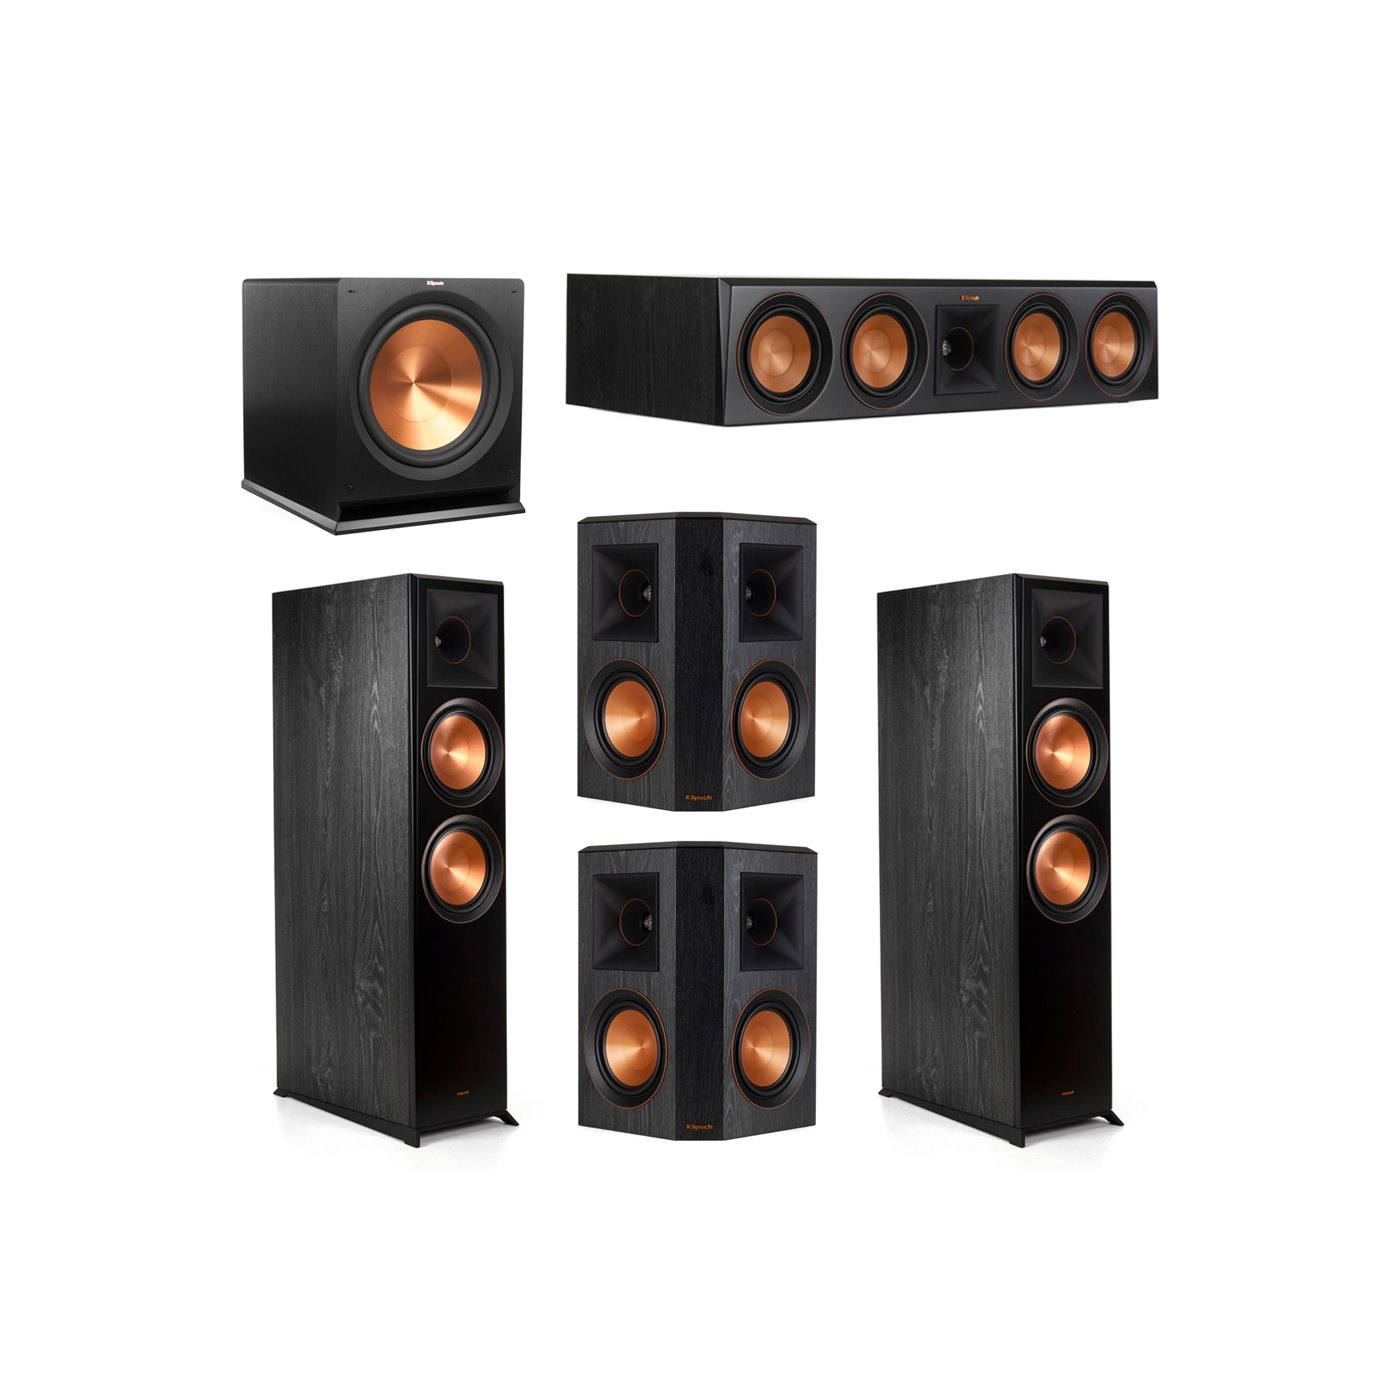 Klipsch 5.1.2 System - 2 RP-8060FA Dolby Atmos Speakers, 1 RP-504C, 2 RP-502S Speakers, 1 R-115SW